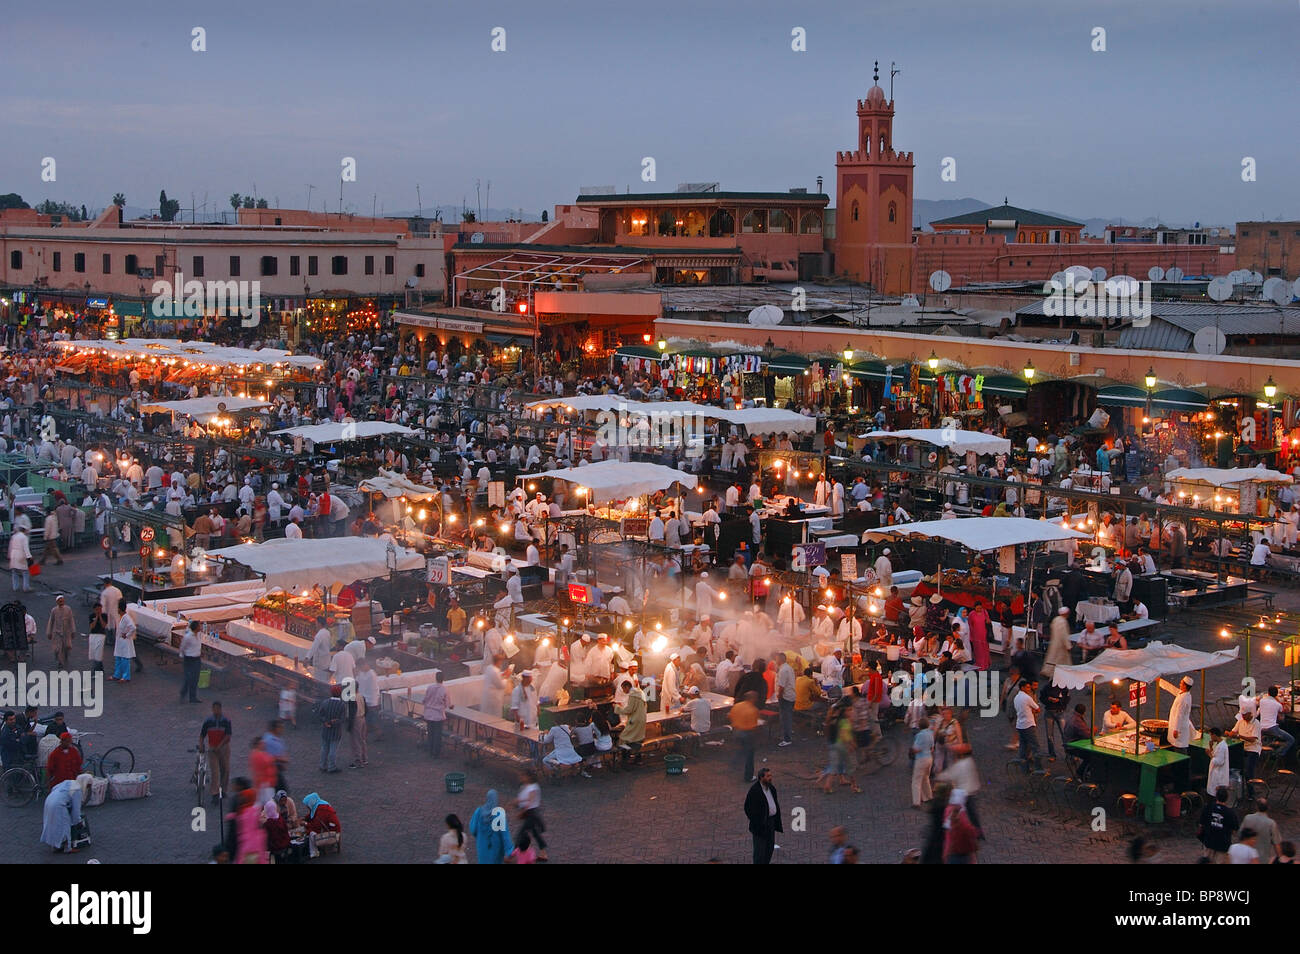 Djemma el Fna square and food courts Marrakech, Morrocco - Stock Image